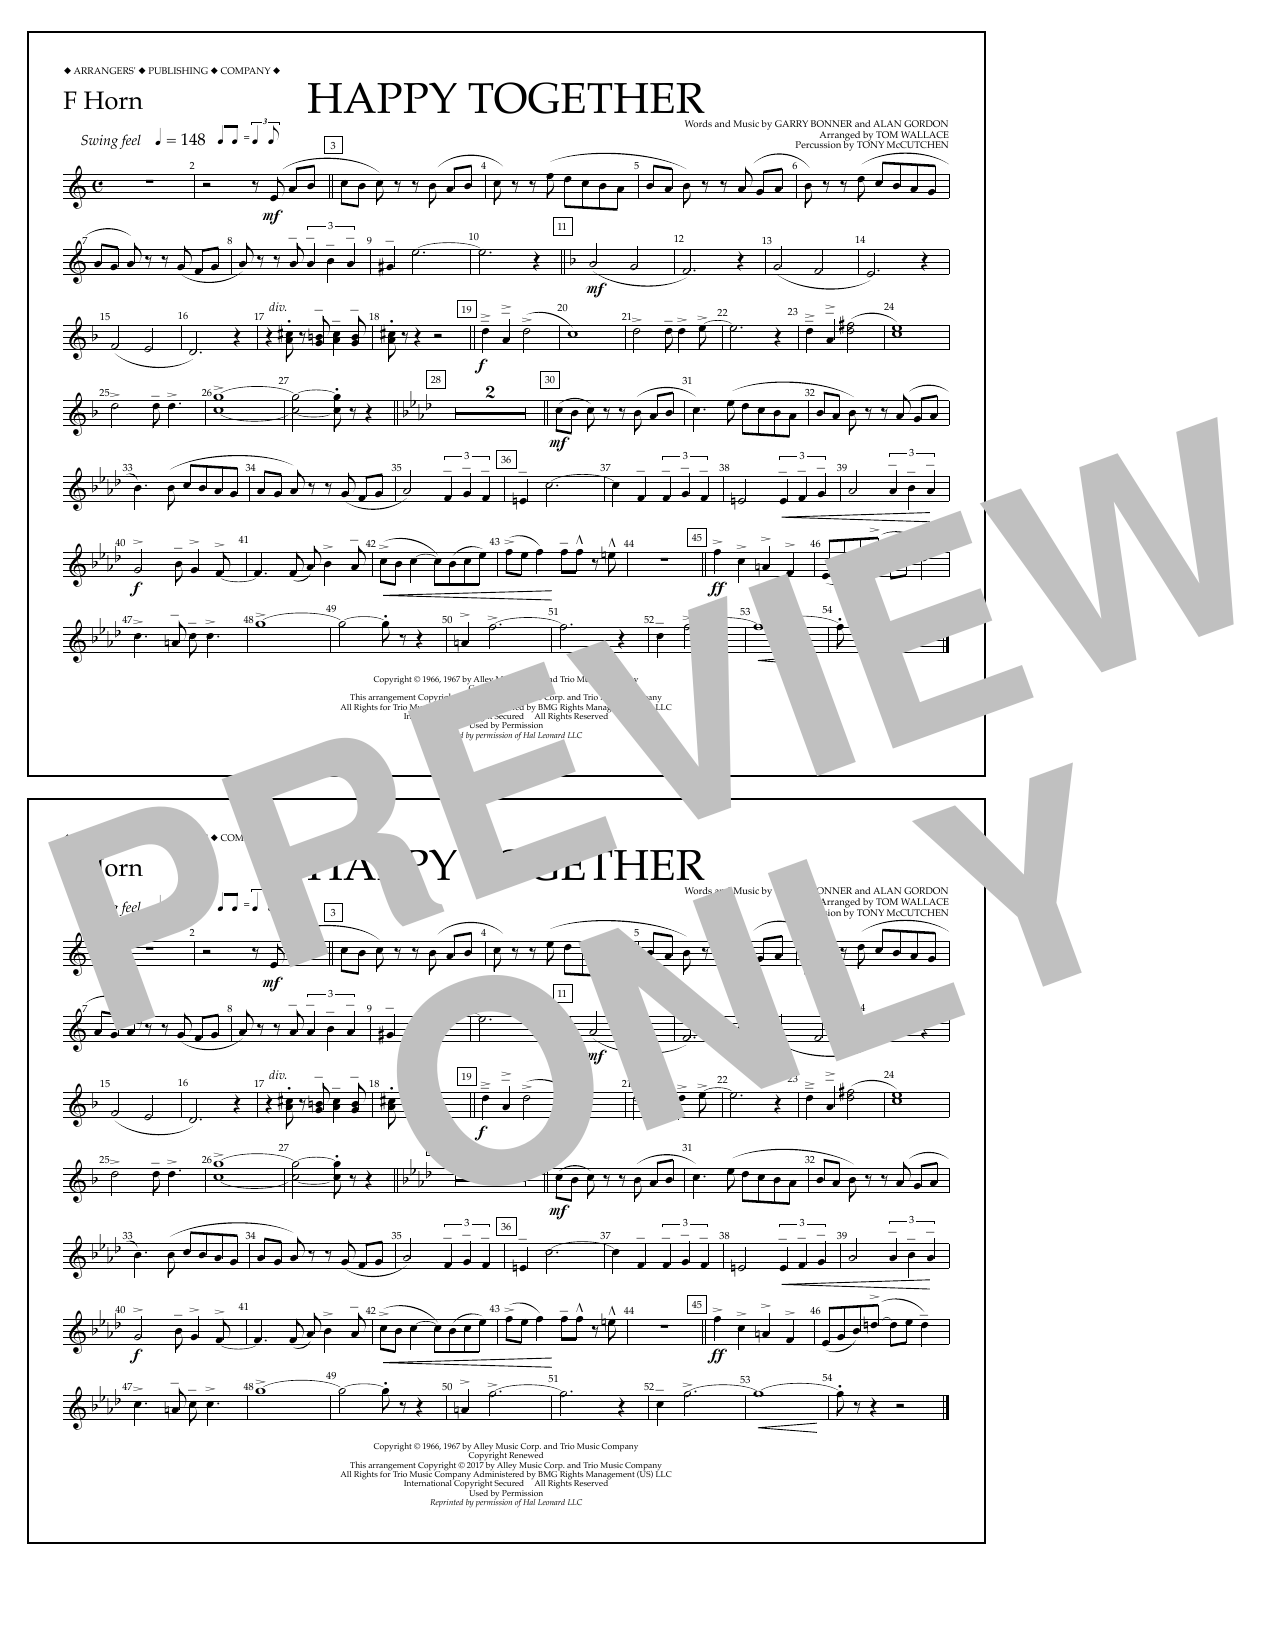 Happy Together - F Horn Sheet Music